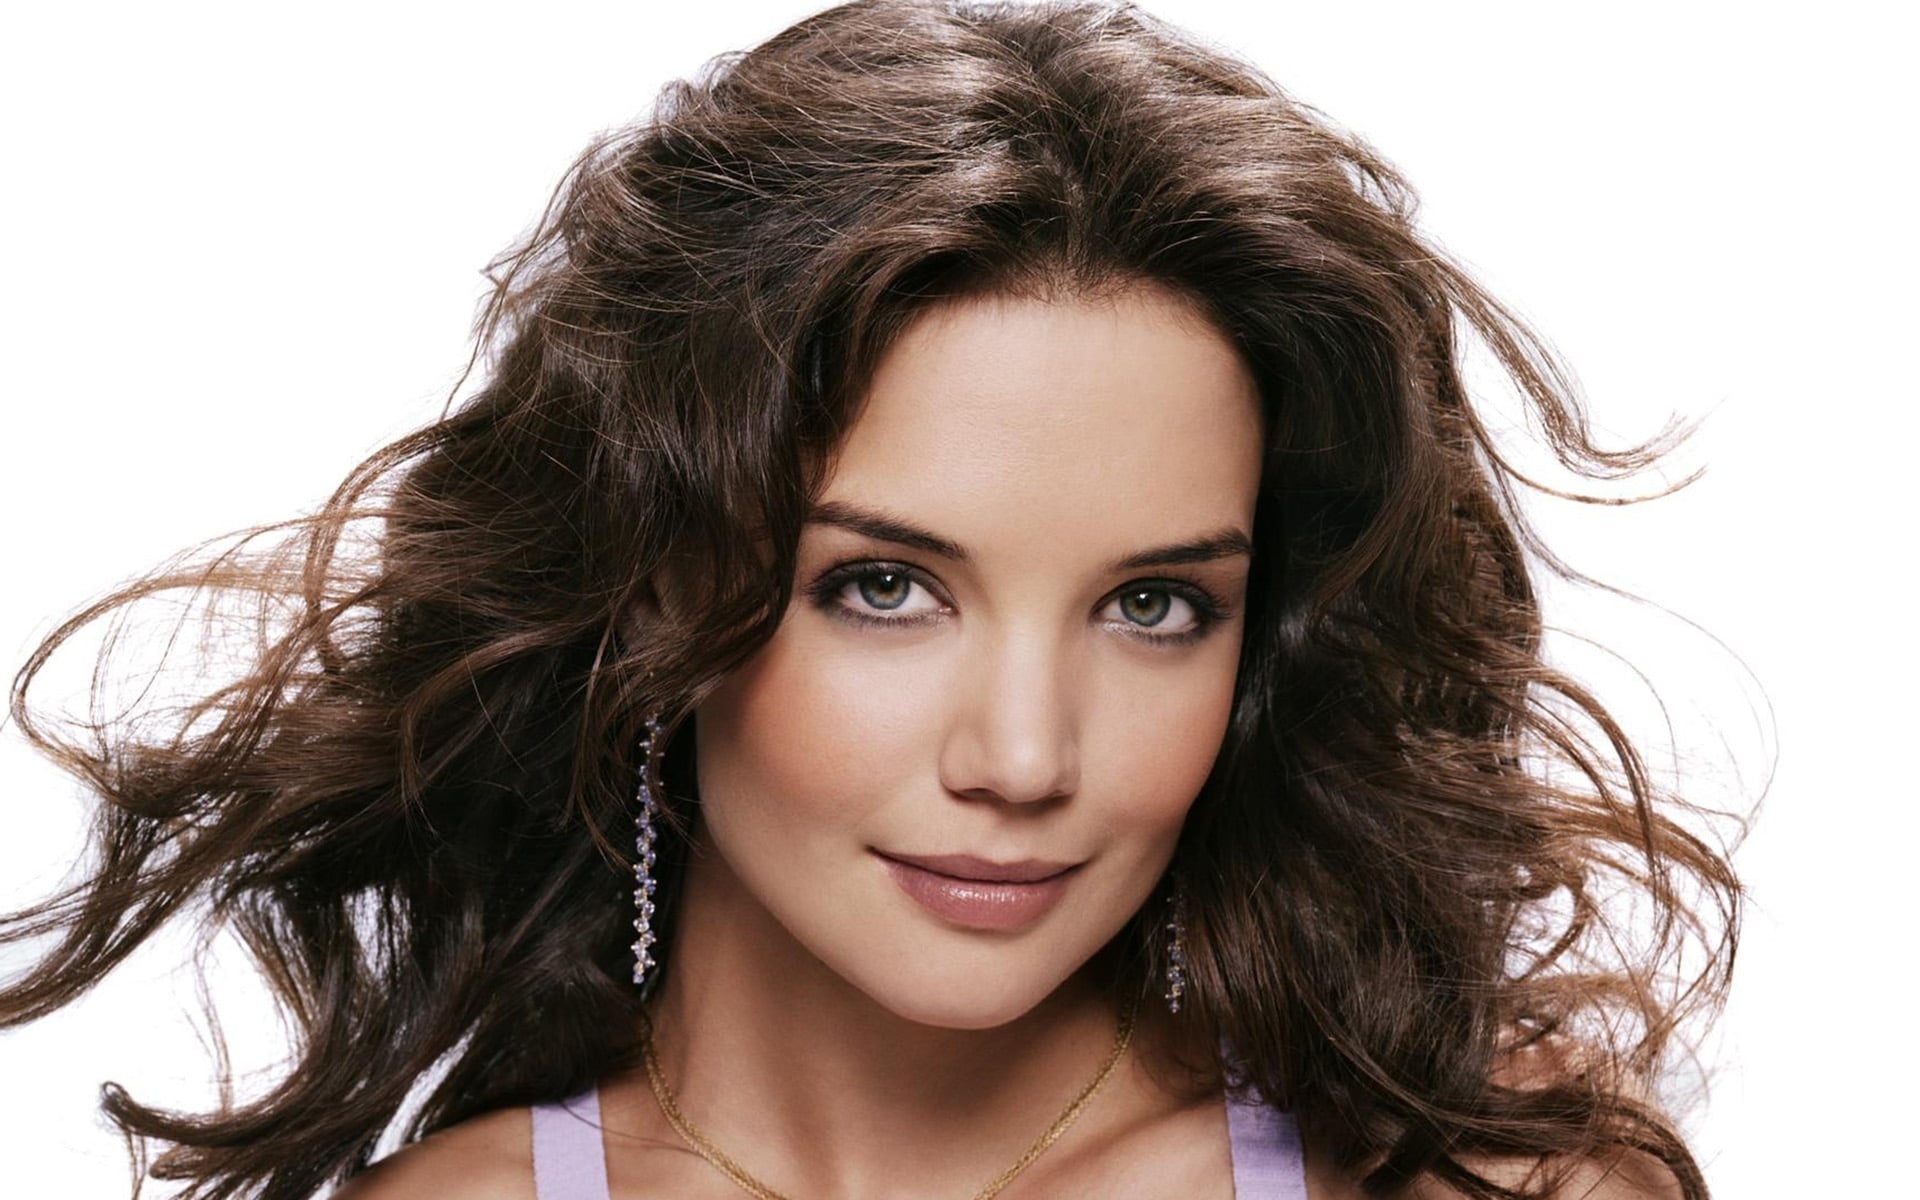 35+ Katie Holmes wallpapers High Quality Download Katie Holmes